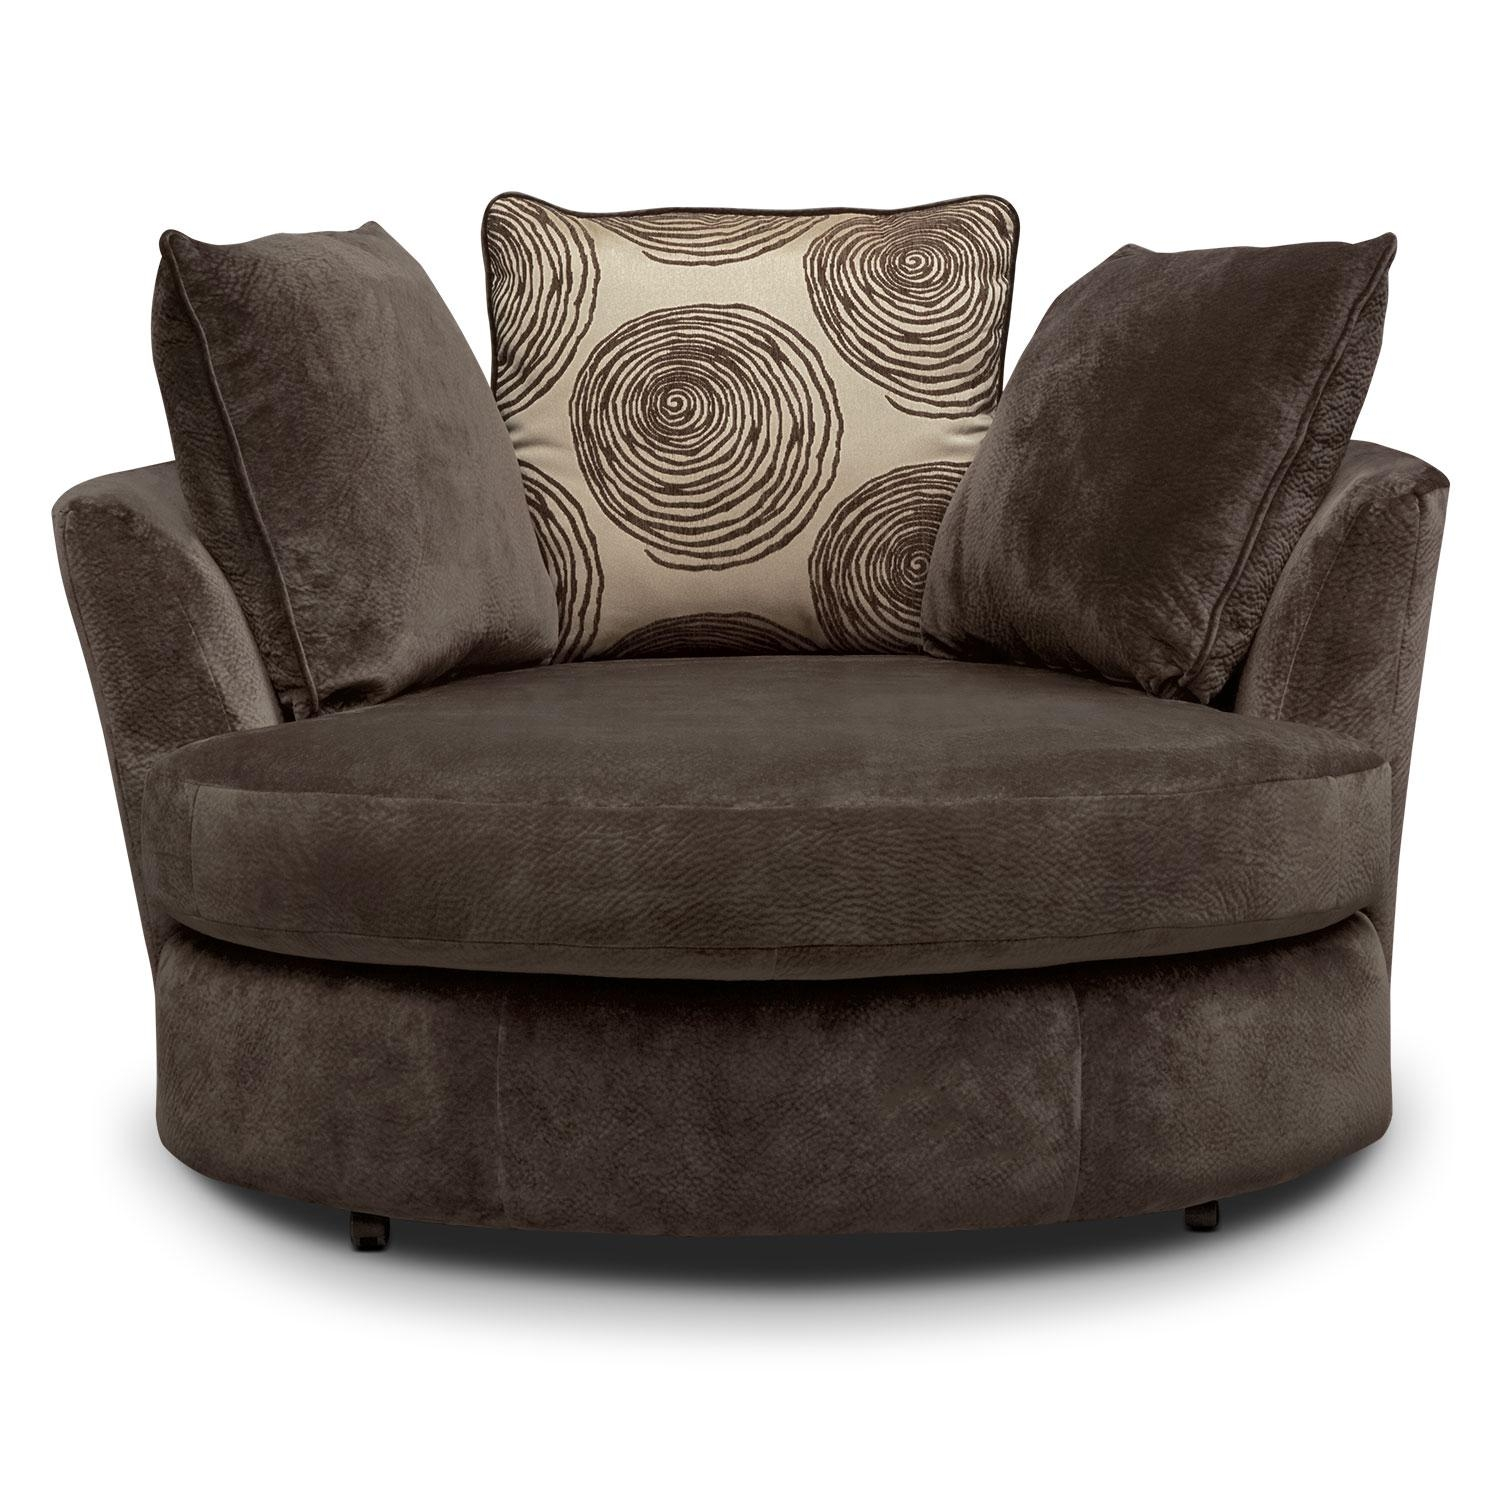 Circle Swivel Chair 20 Top Cuddler Swivel Sofa Chairs Sofa Ideas